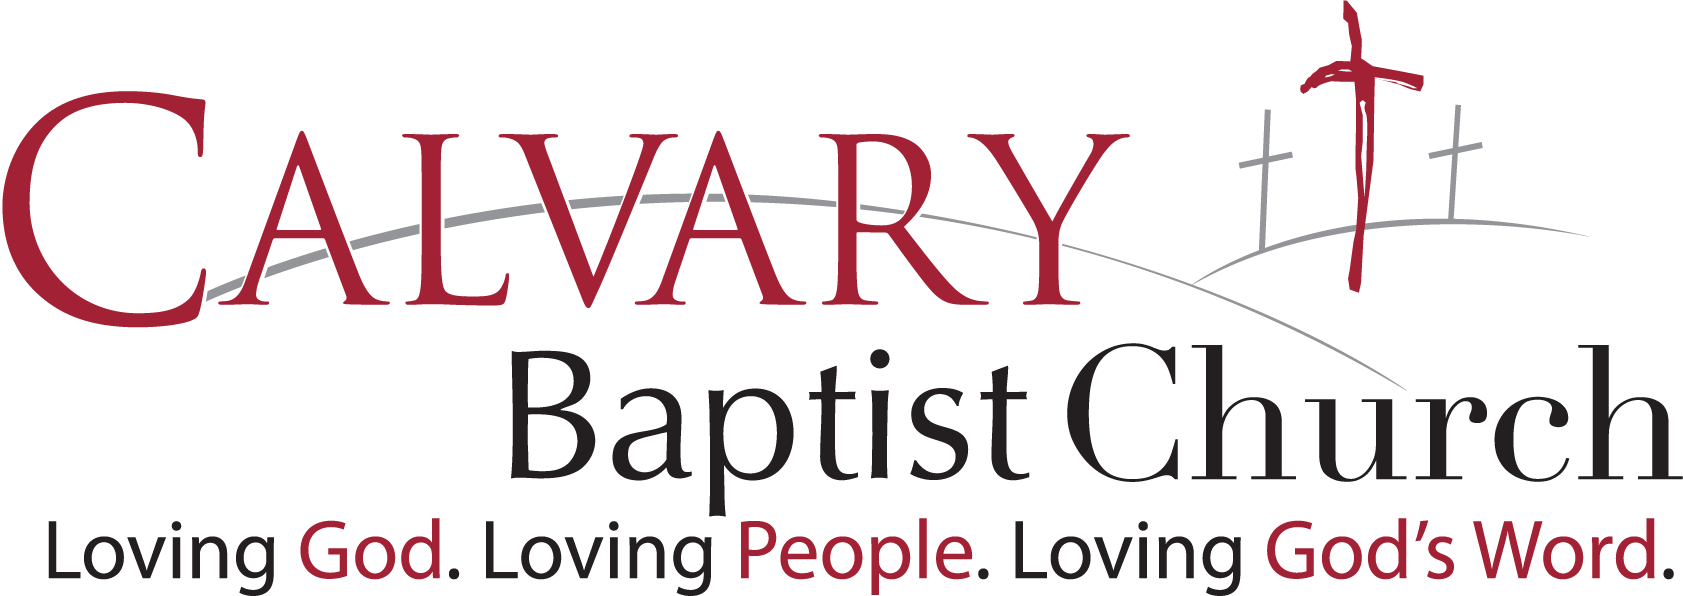 98784Calvary Baptisht Church_LOGO_FINAL